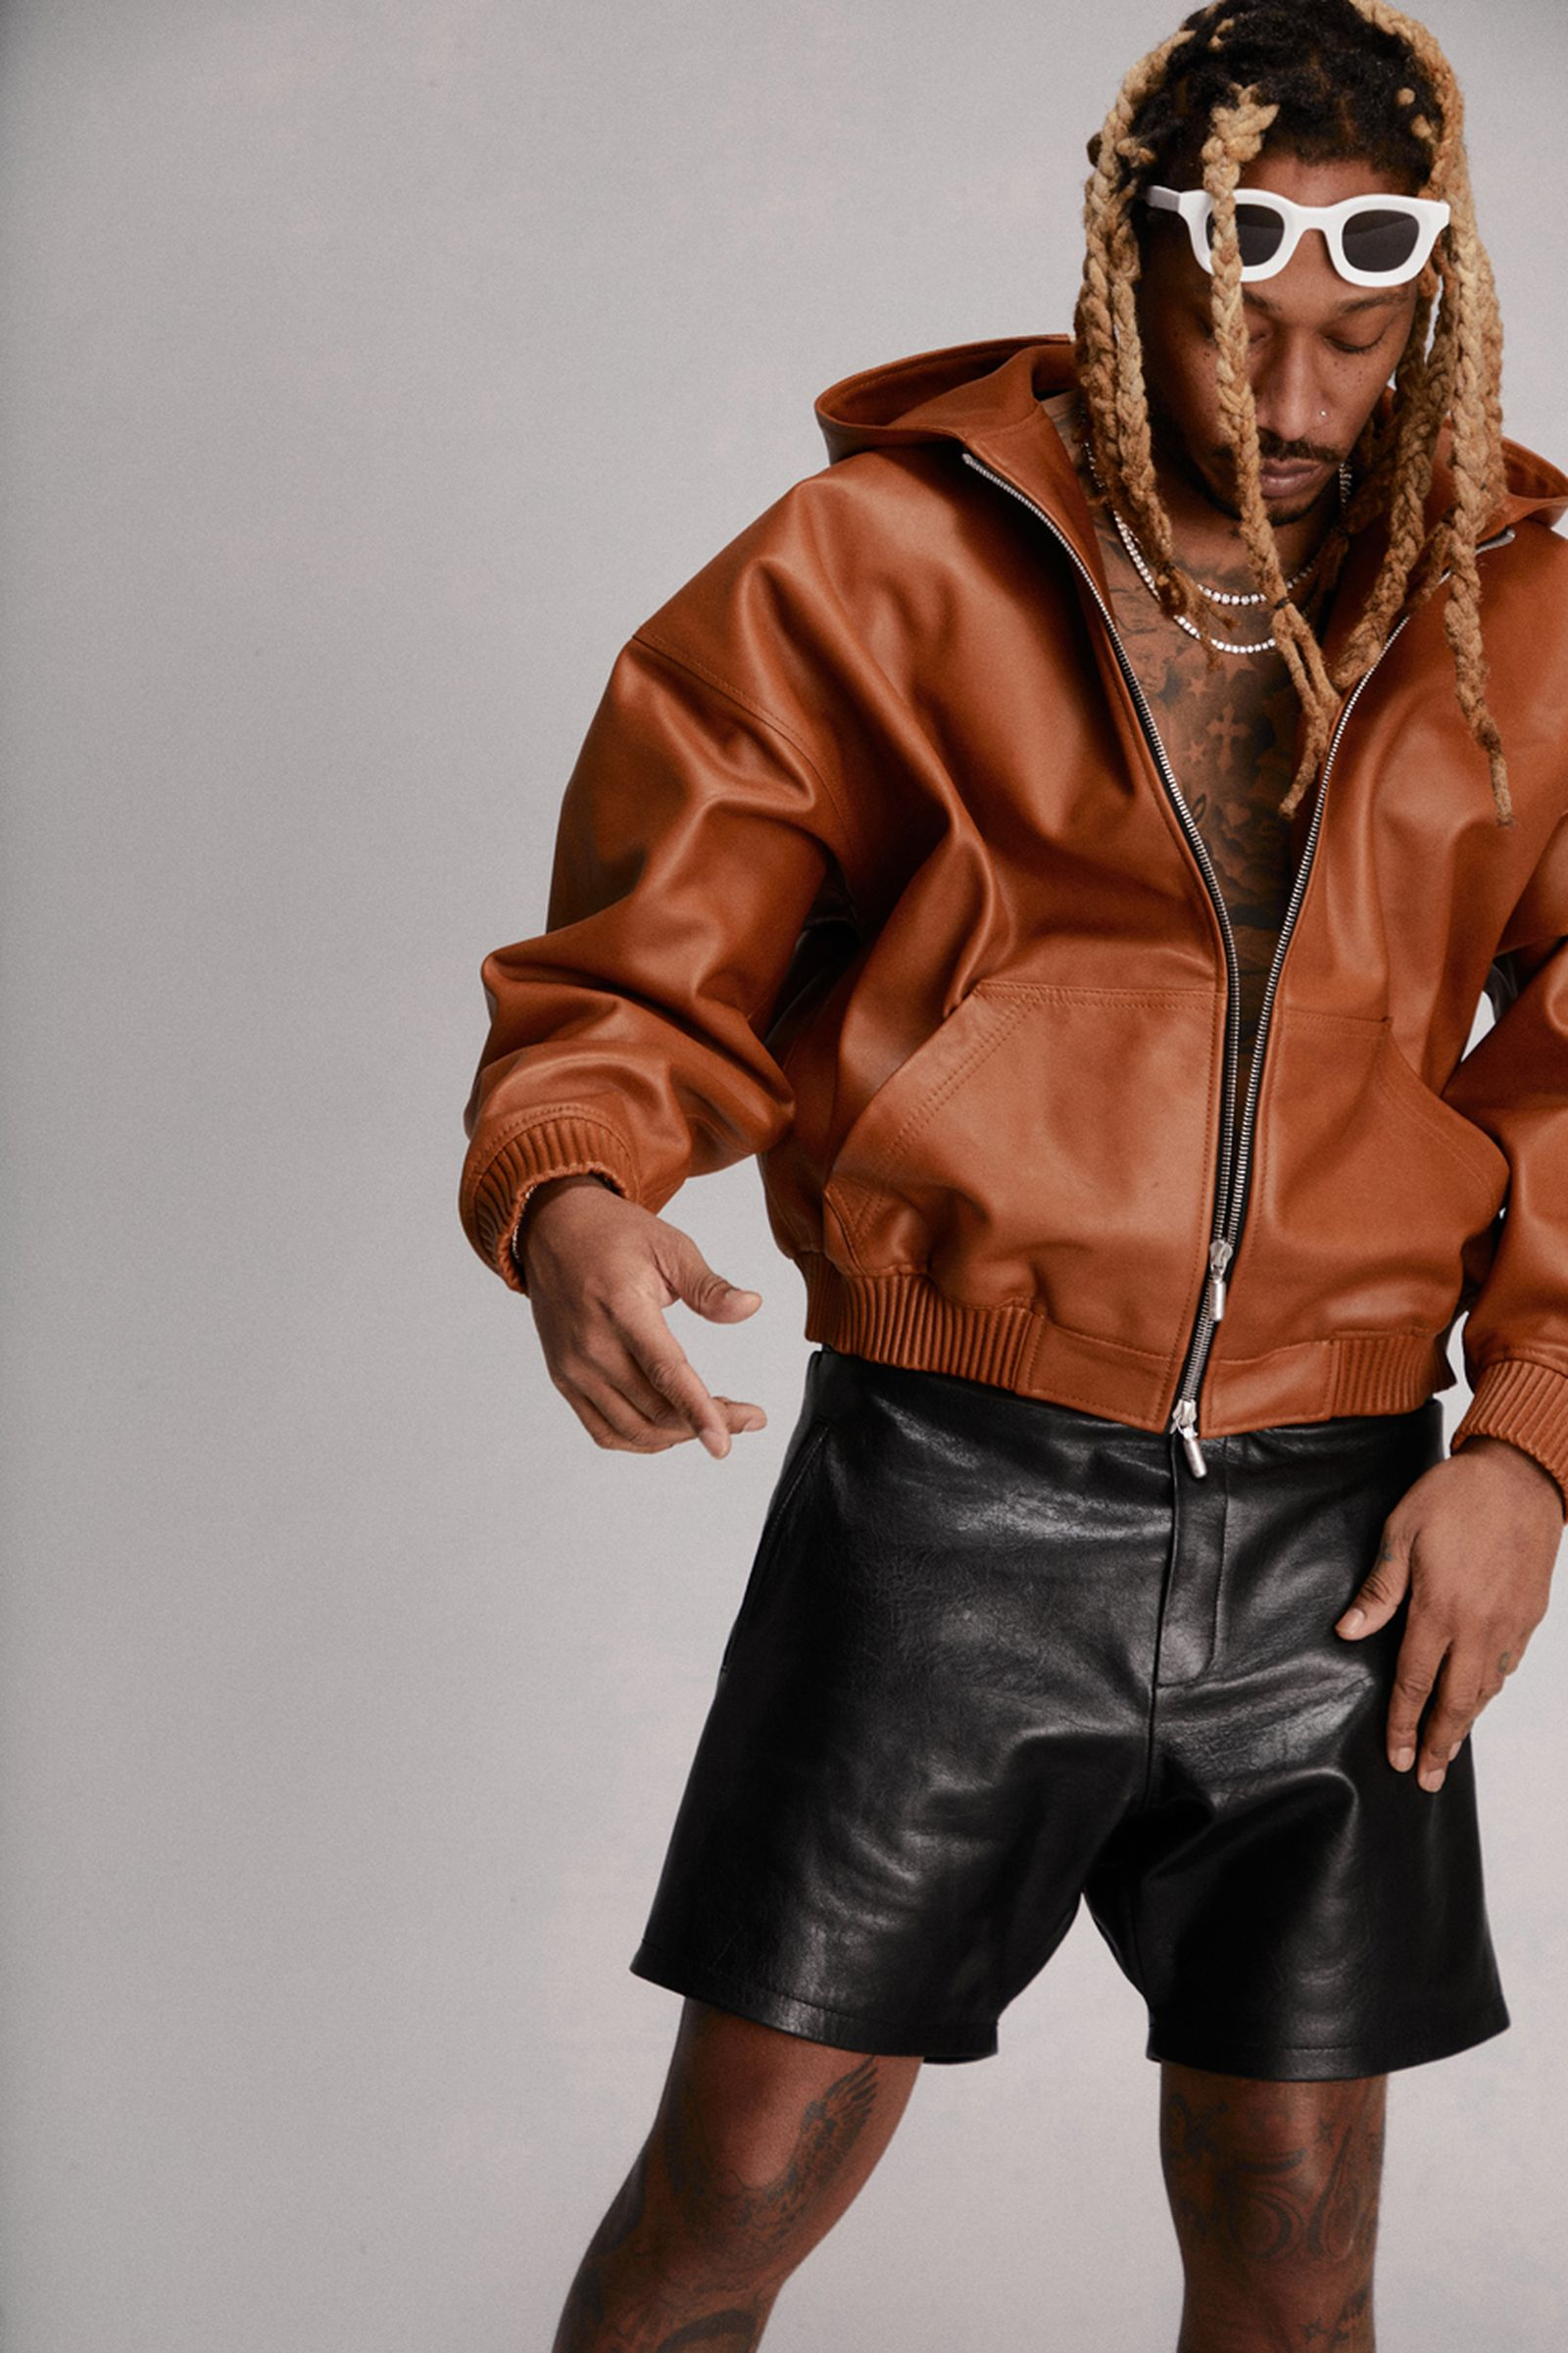 future-fronts-new-rhude-campaign-9